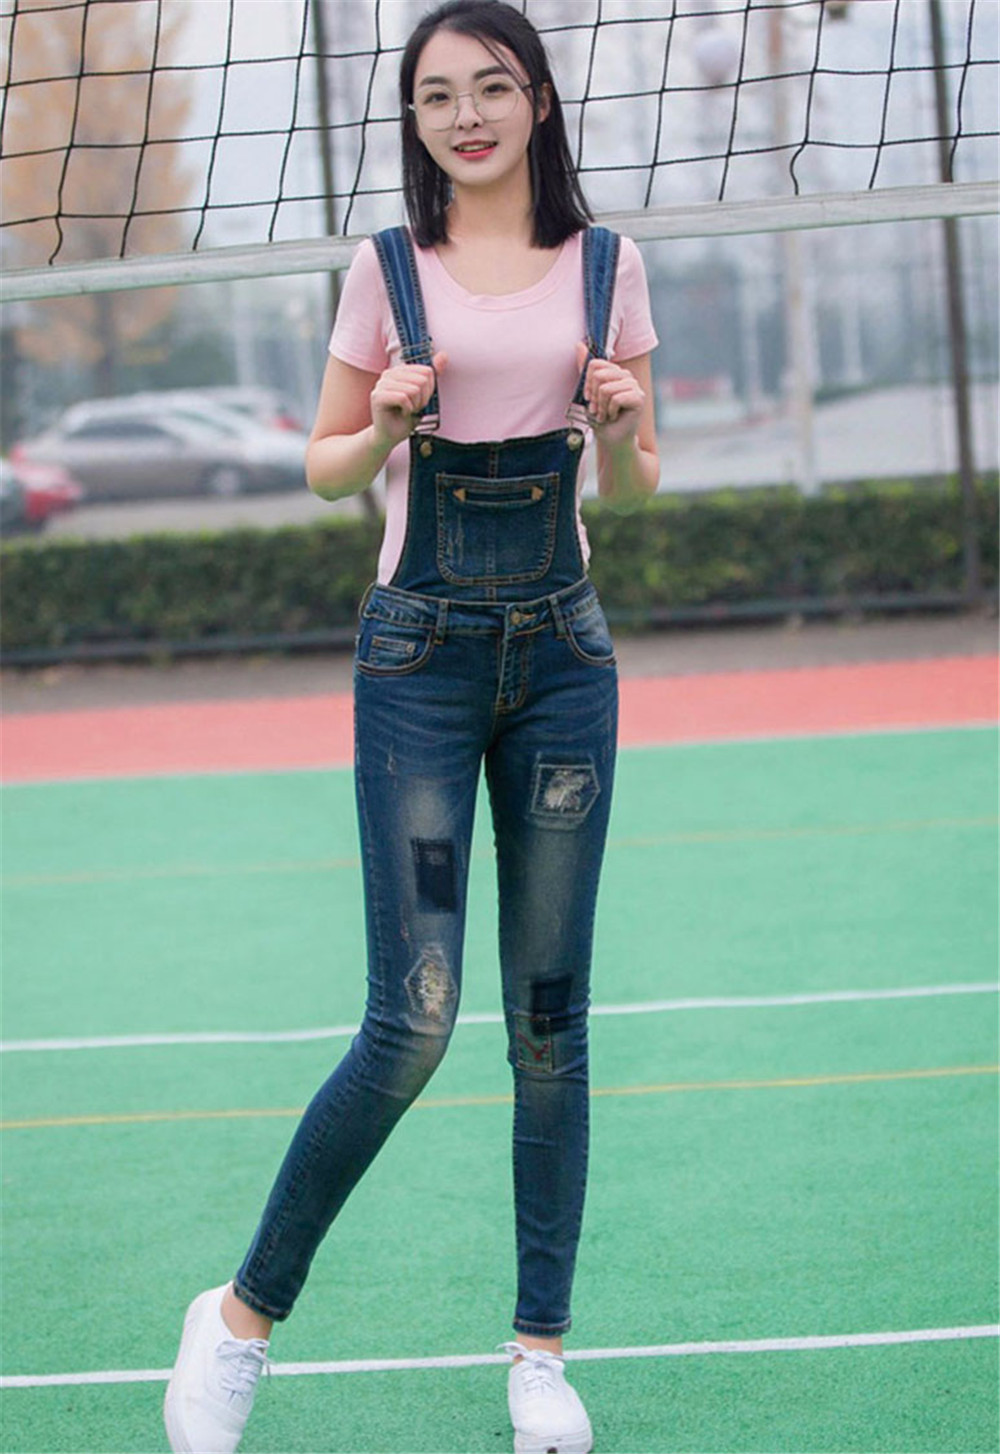 Women Stonewash Destroyed Denim Jeans Ripped Hole Jumpsuit Denim Overalls Pants Sexy Slim Casual Skinny Girls Rompers for Ladies denim overalls male suspenders front pockets men s ripped jeans casual hole blue bib jeans boyfriend jeans jumpsuit or04